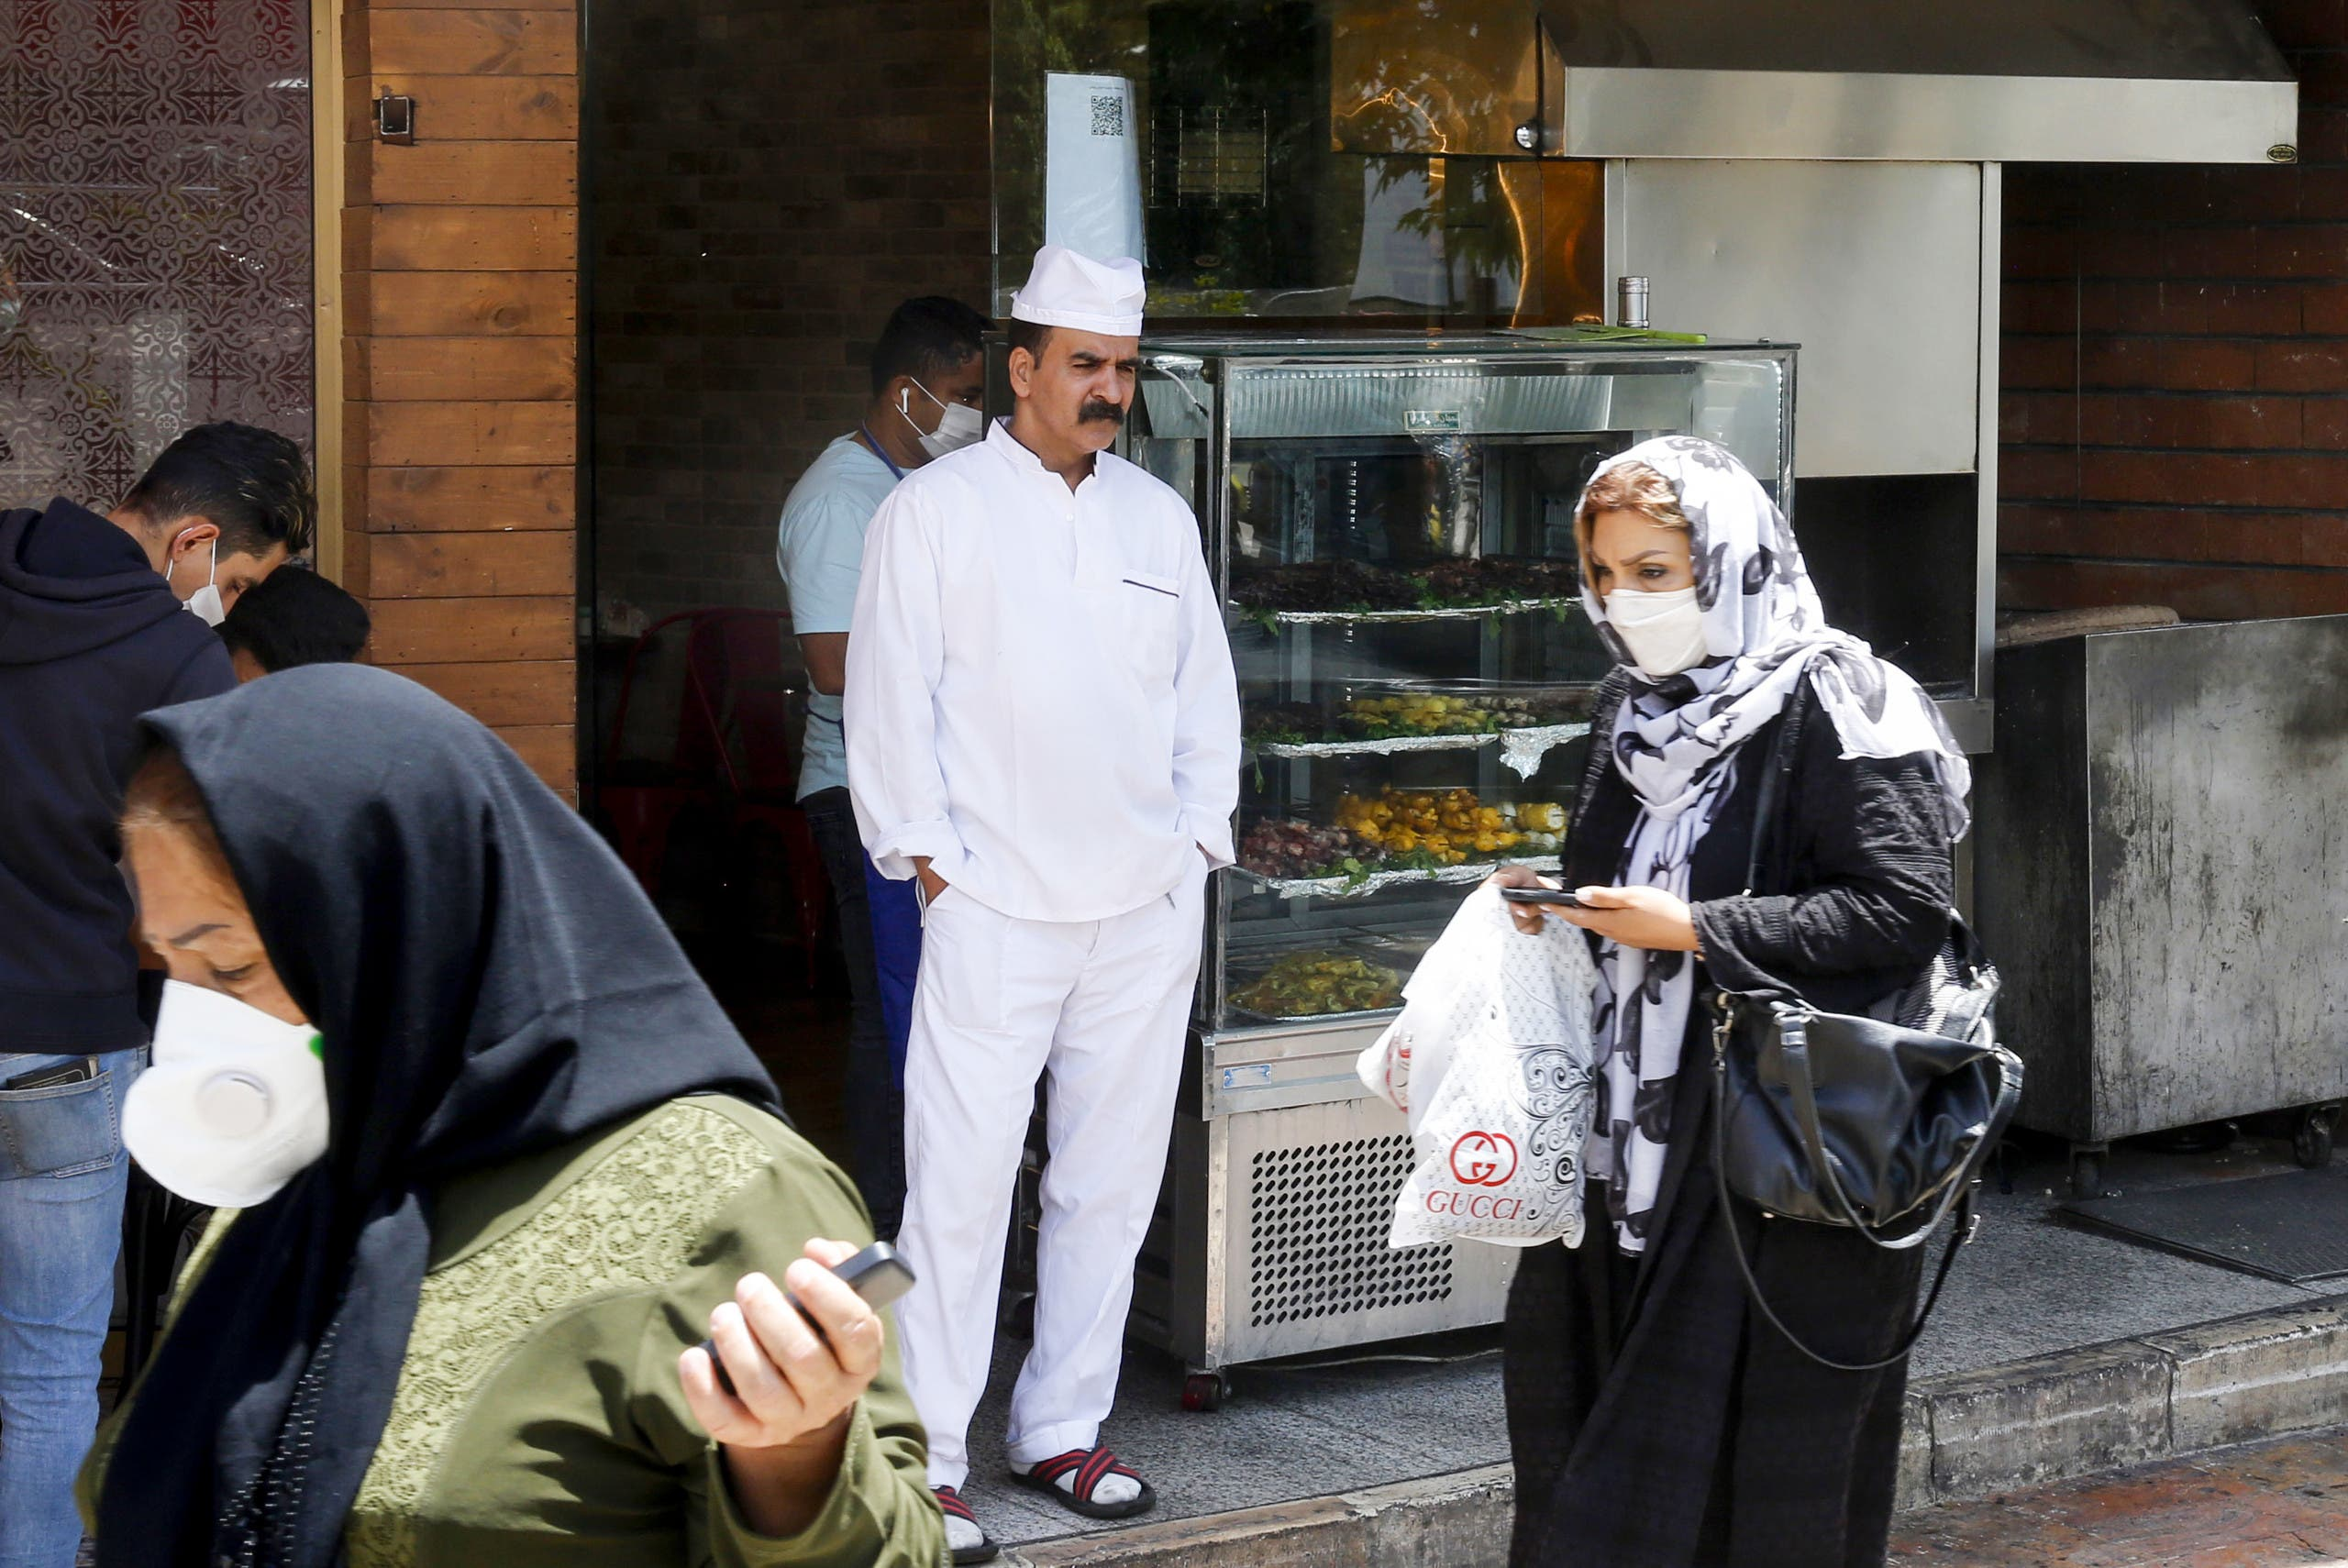 Iranians pass by a restaurant in the capital city of Tehran, on May 26, 2020. (AFP)